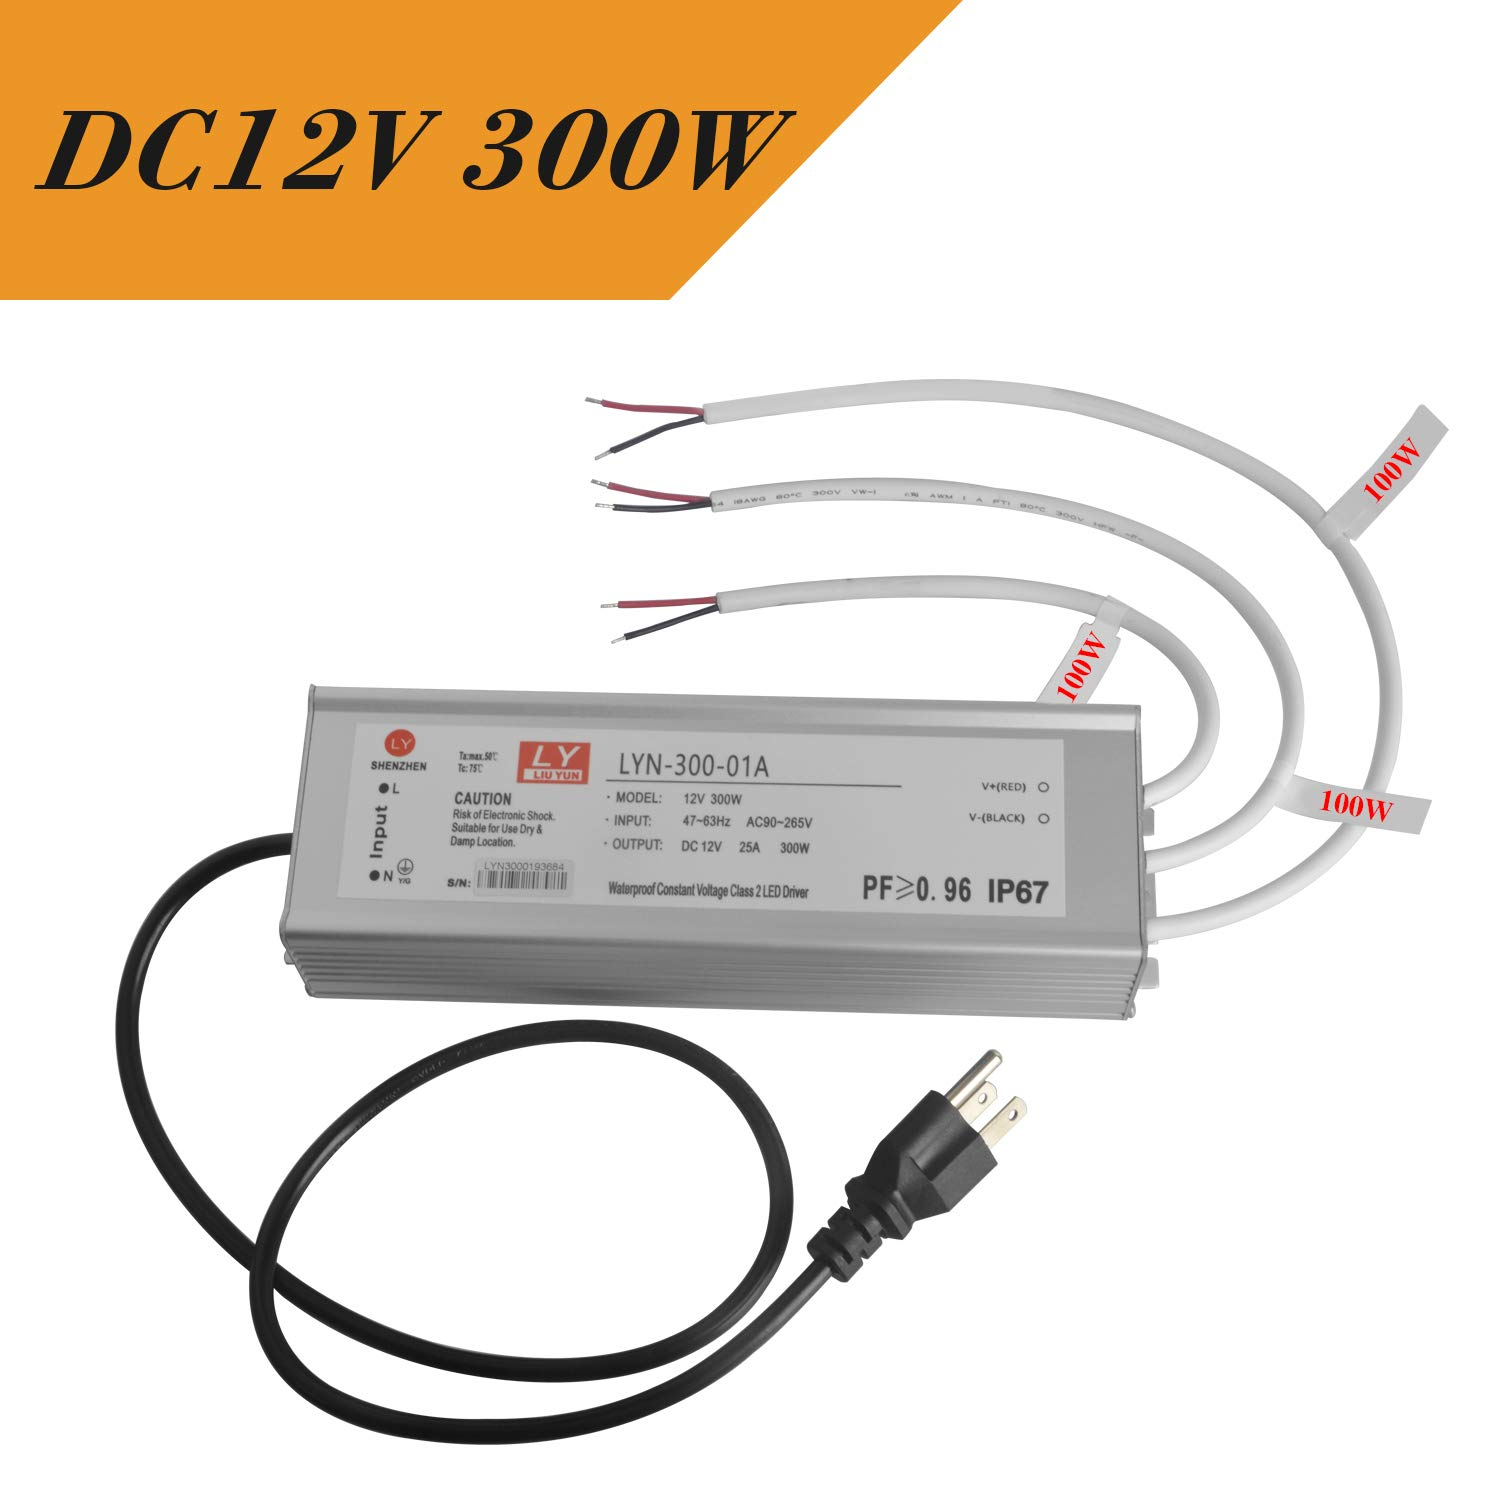 LED Driver 300W (100Wx3)25A, Waterproof IP67 Switching Power Supply,12V DC LED Transformer, Safe and Stable,Low Voltage Power Supply for LED Strip Lights LED Module and CCTV Power Accessories